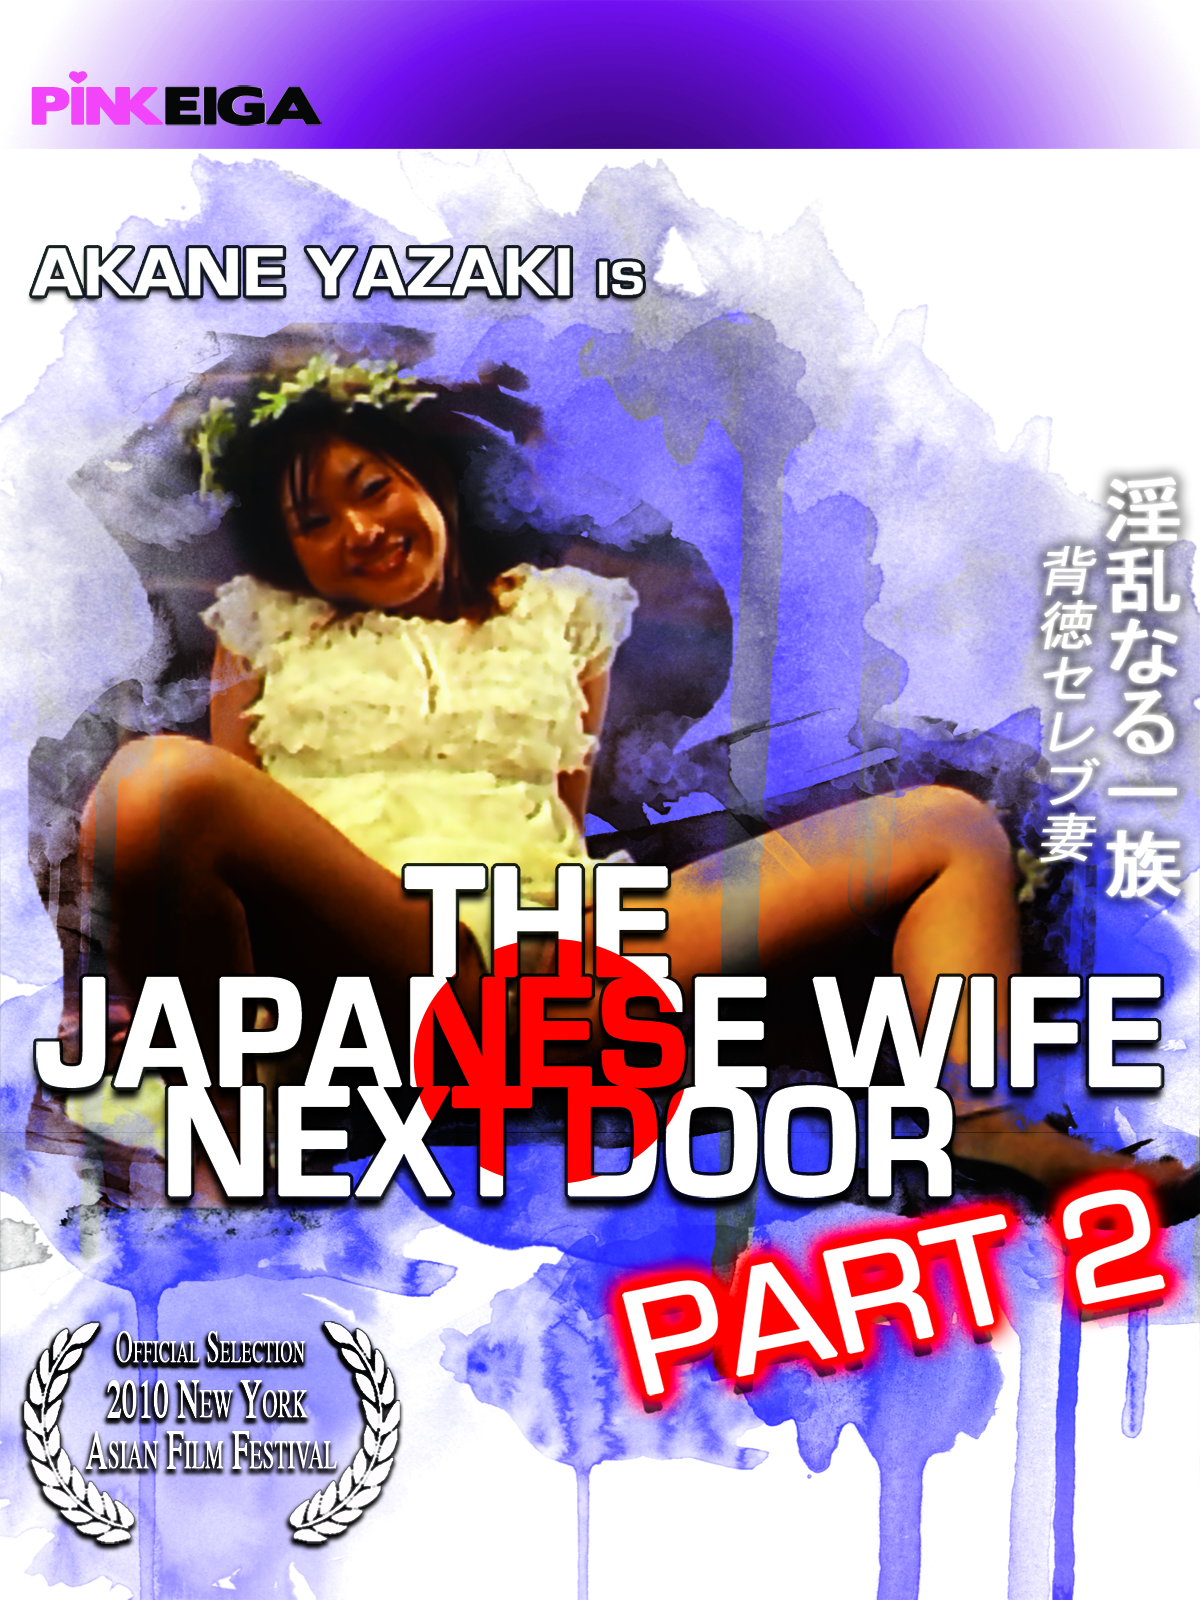 The Japanese Wife Next Door Part 2 DVD